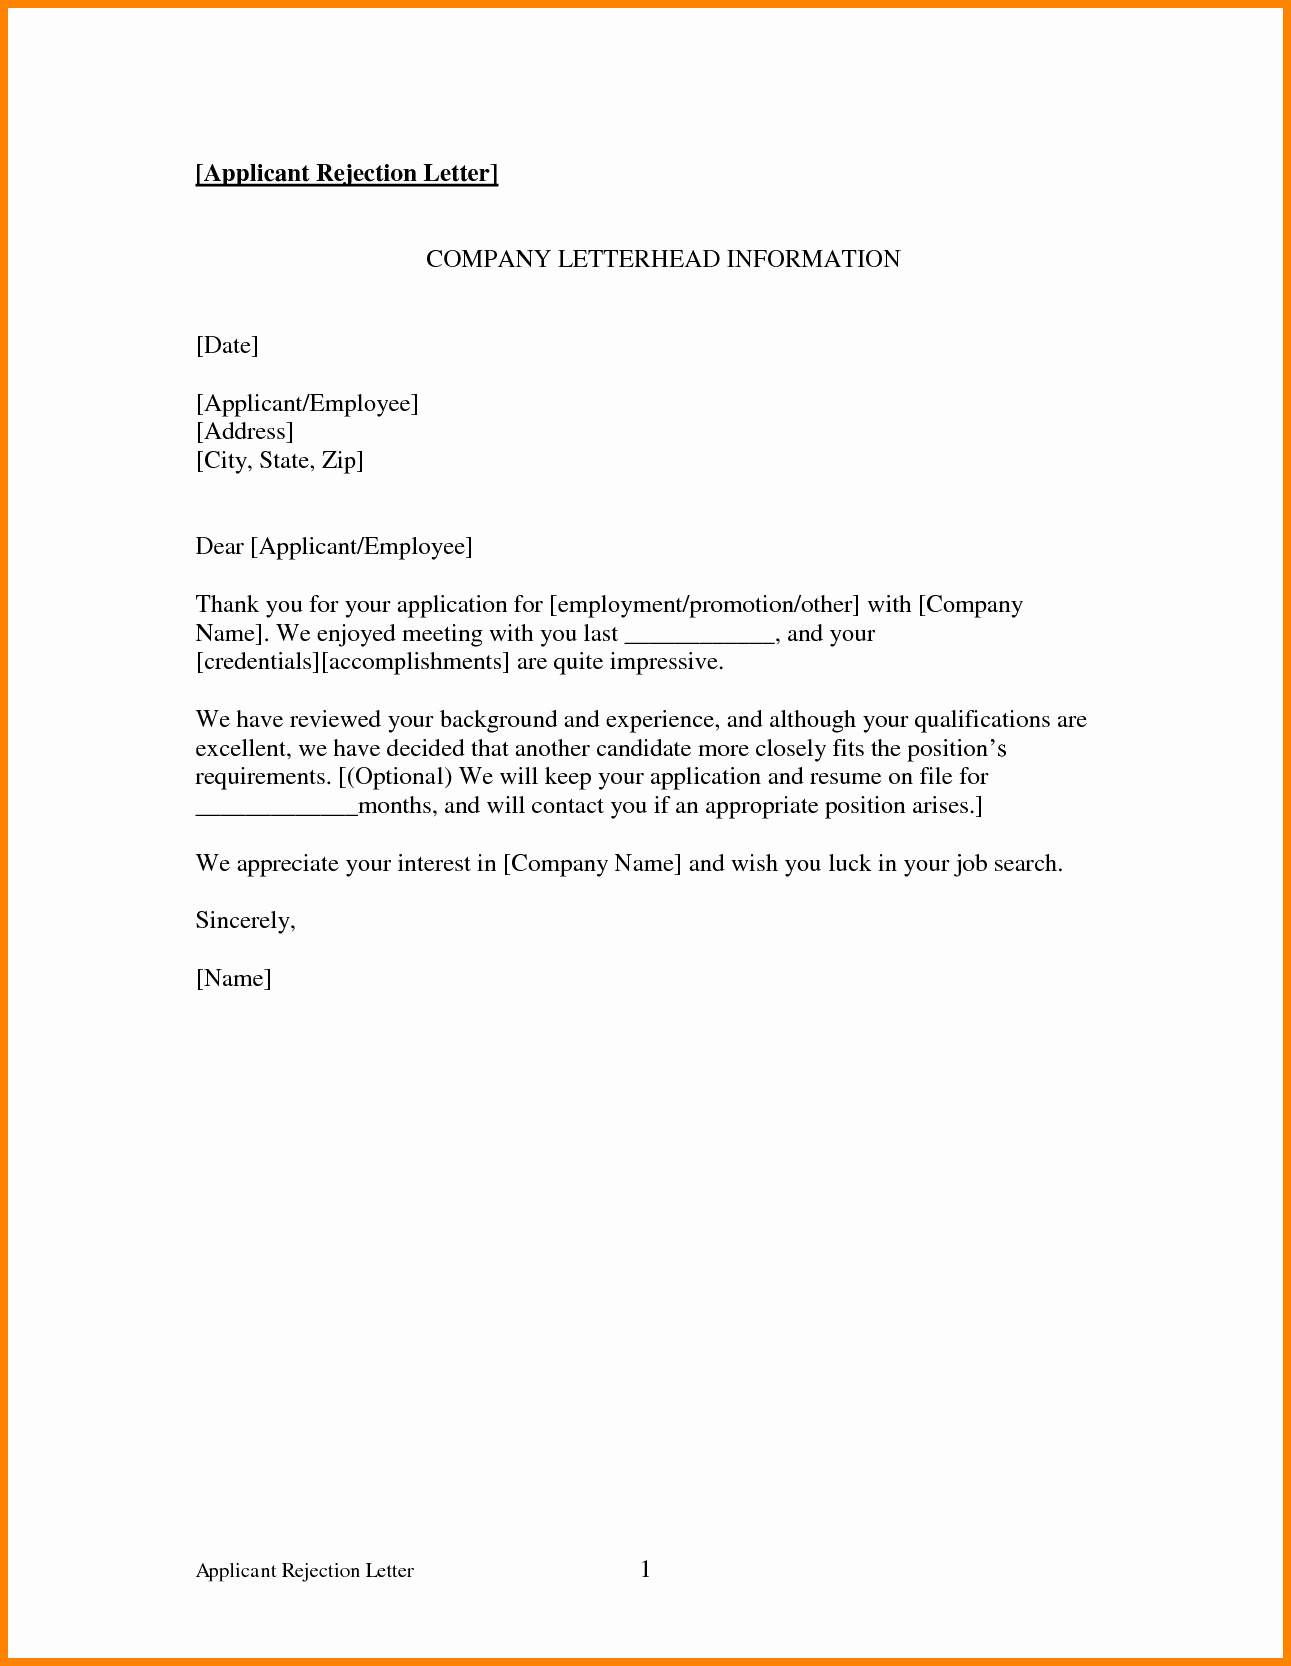 Application Rejection Letter Template Awesome 16 Job Rejection Letter Sample to Applicant